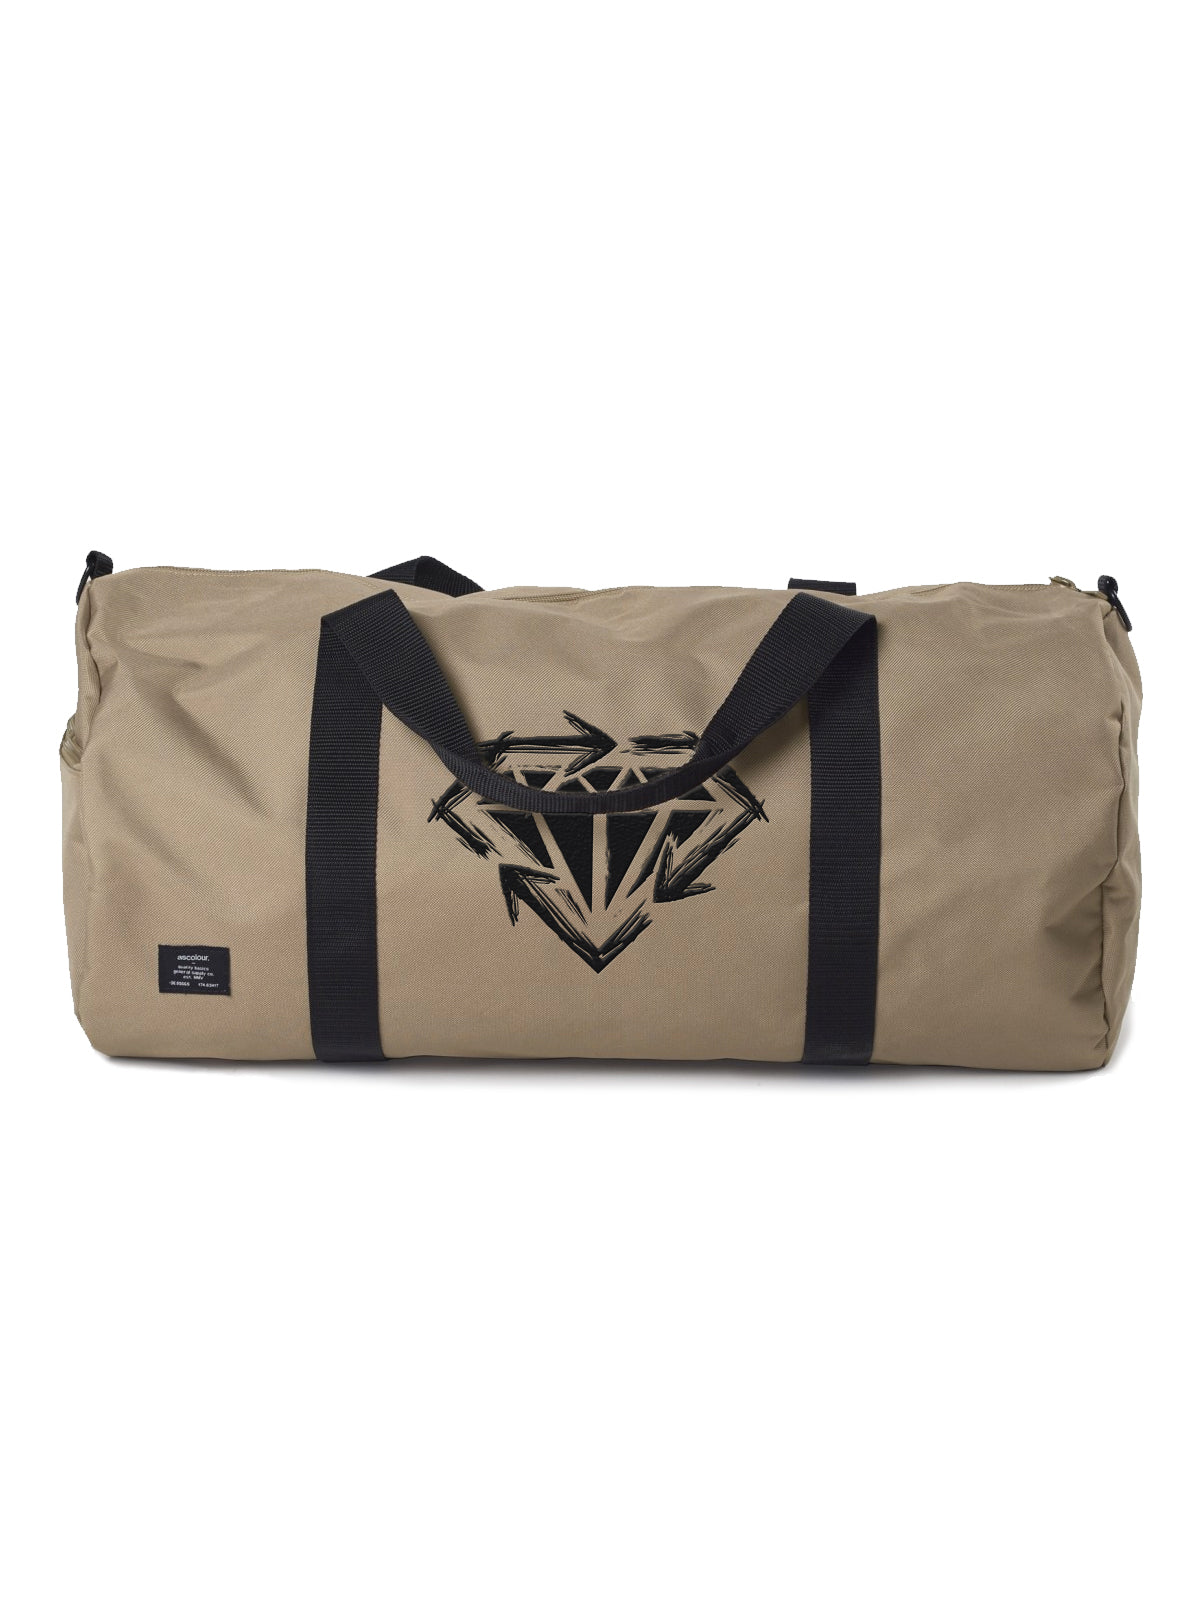 Stick to Your Guns - Diamond Duffle Bag - Merch Limited